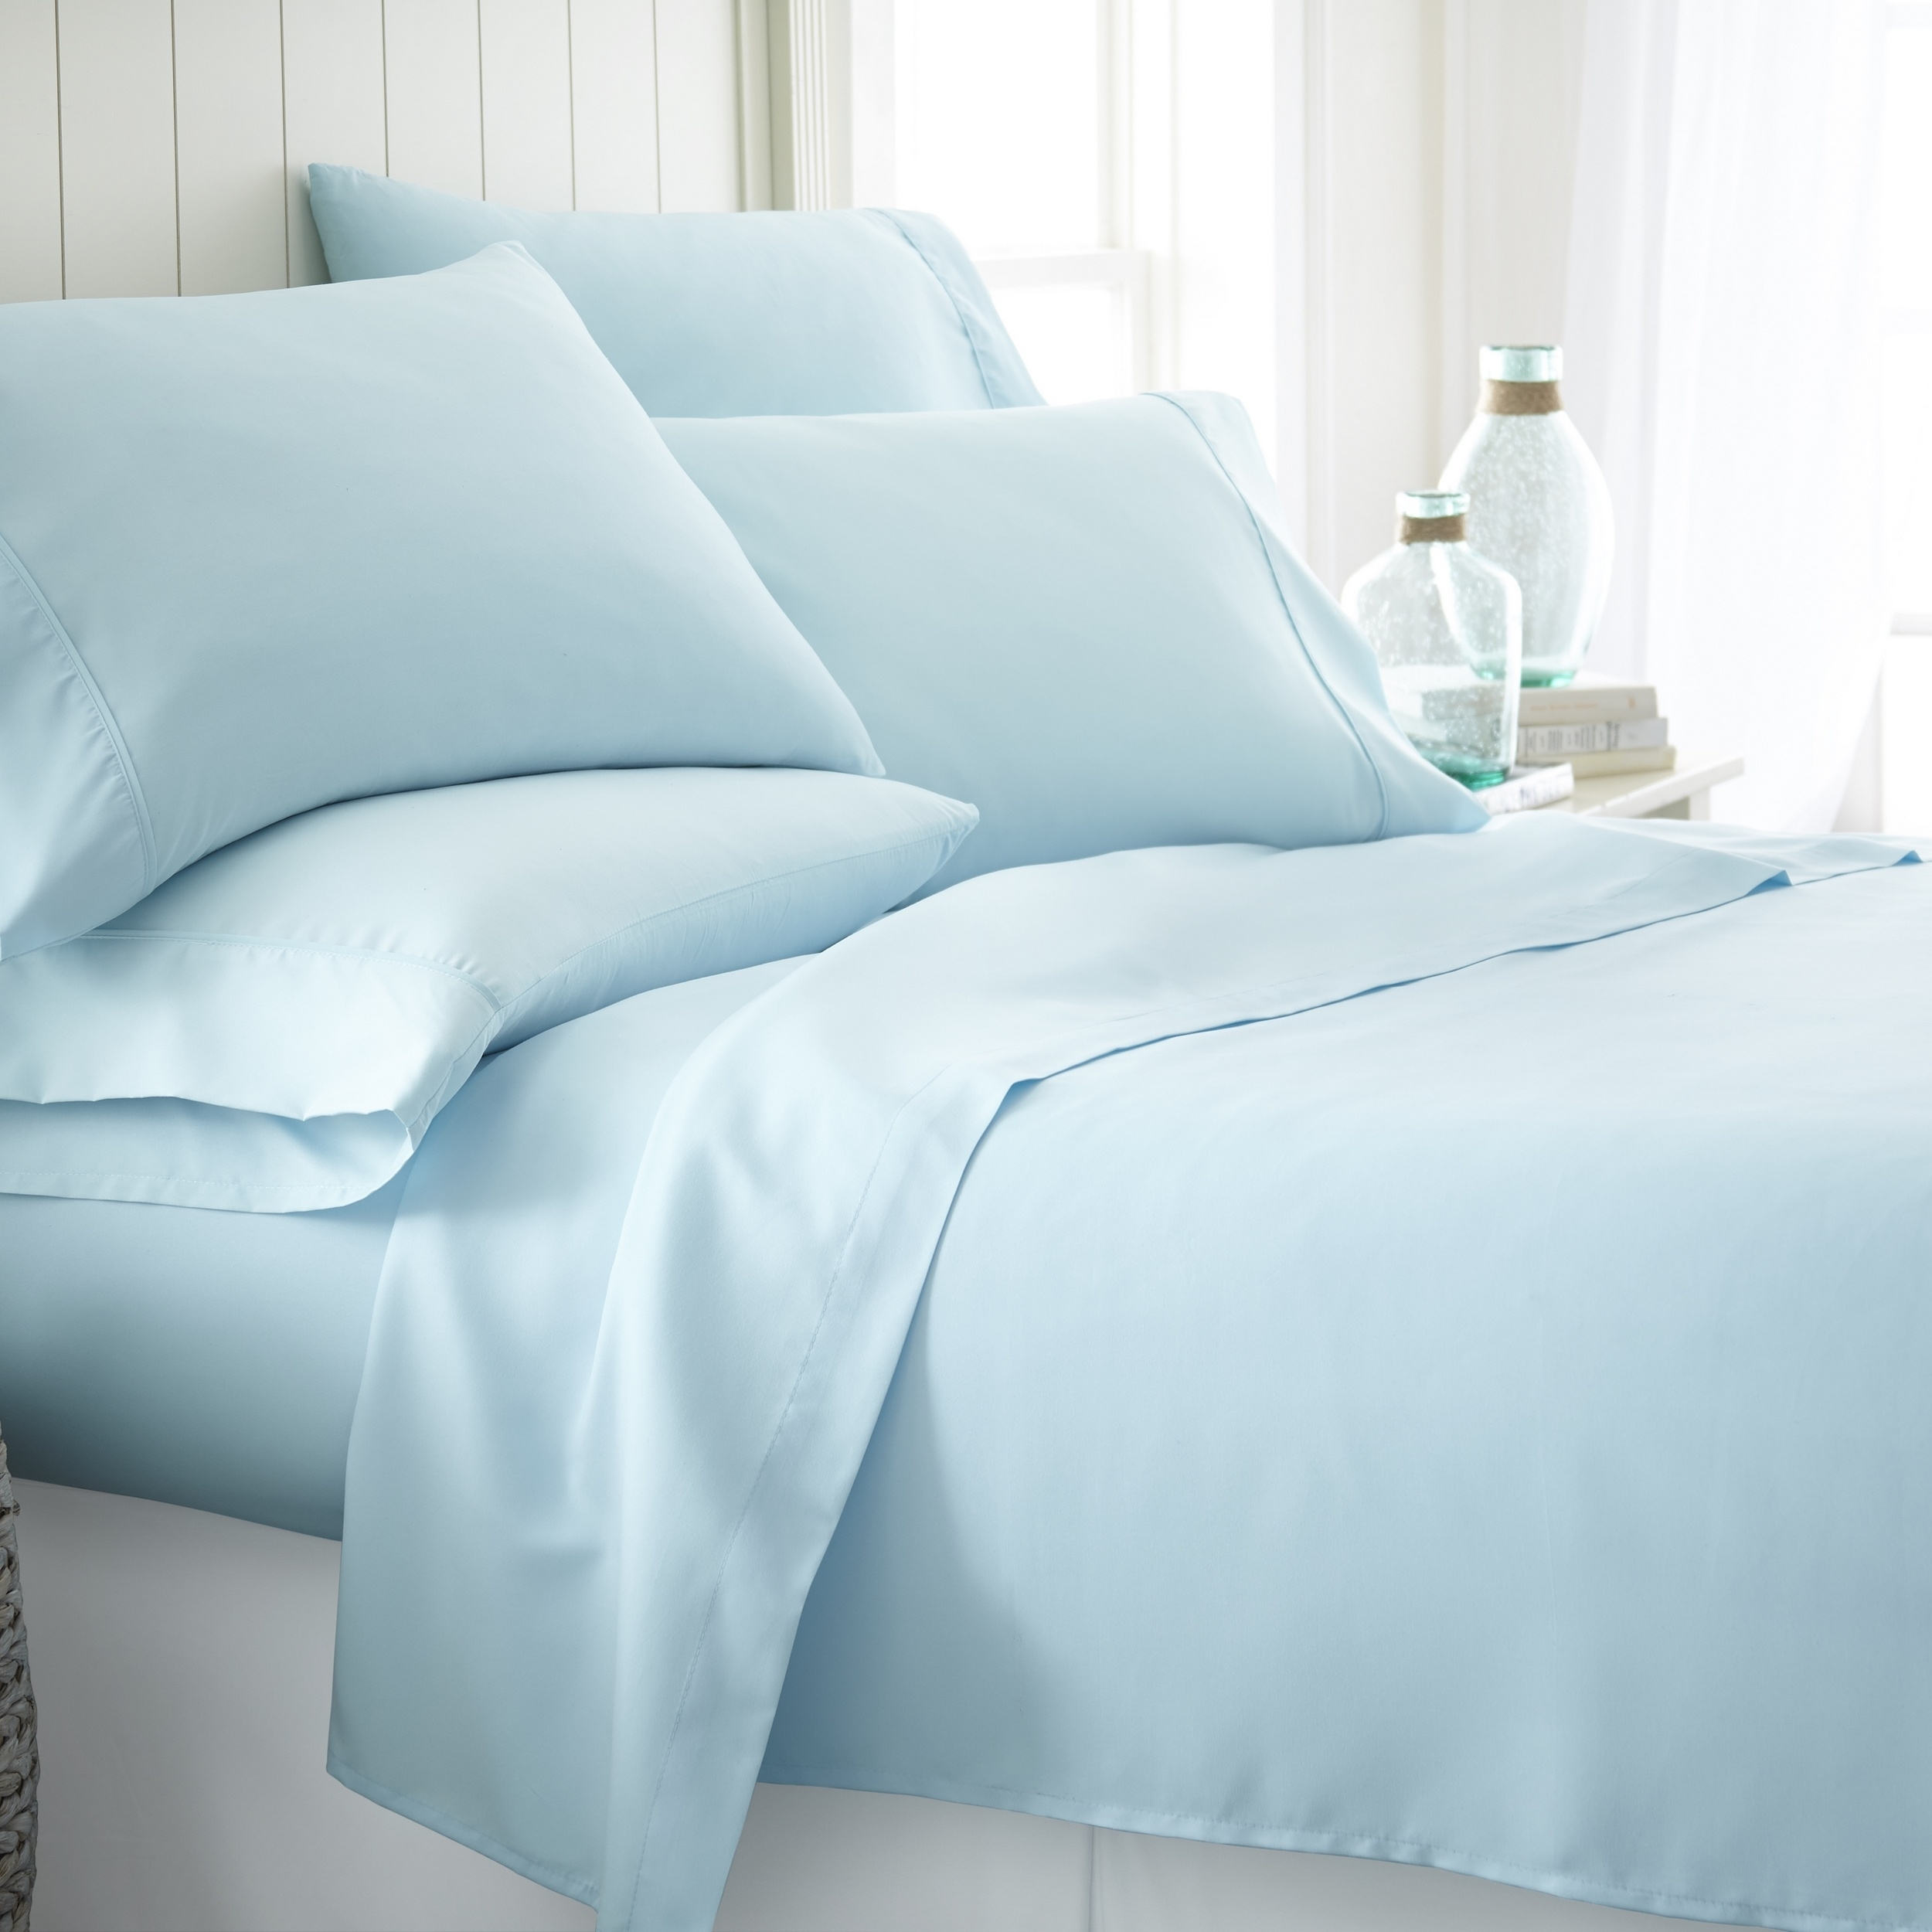 Premium Bamboo 6-piece Bed Sheet Set In 14 Colors By Bamboo Softness - Aqua, Full